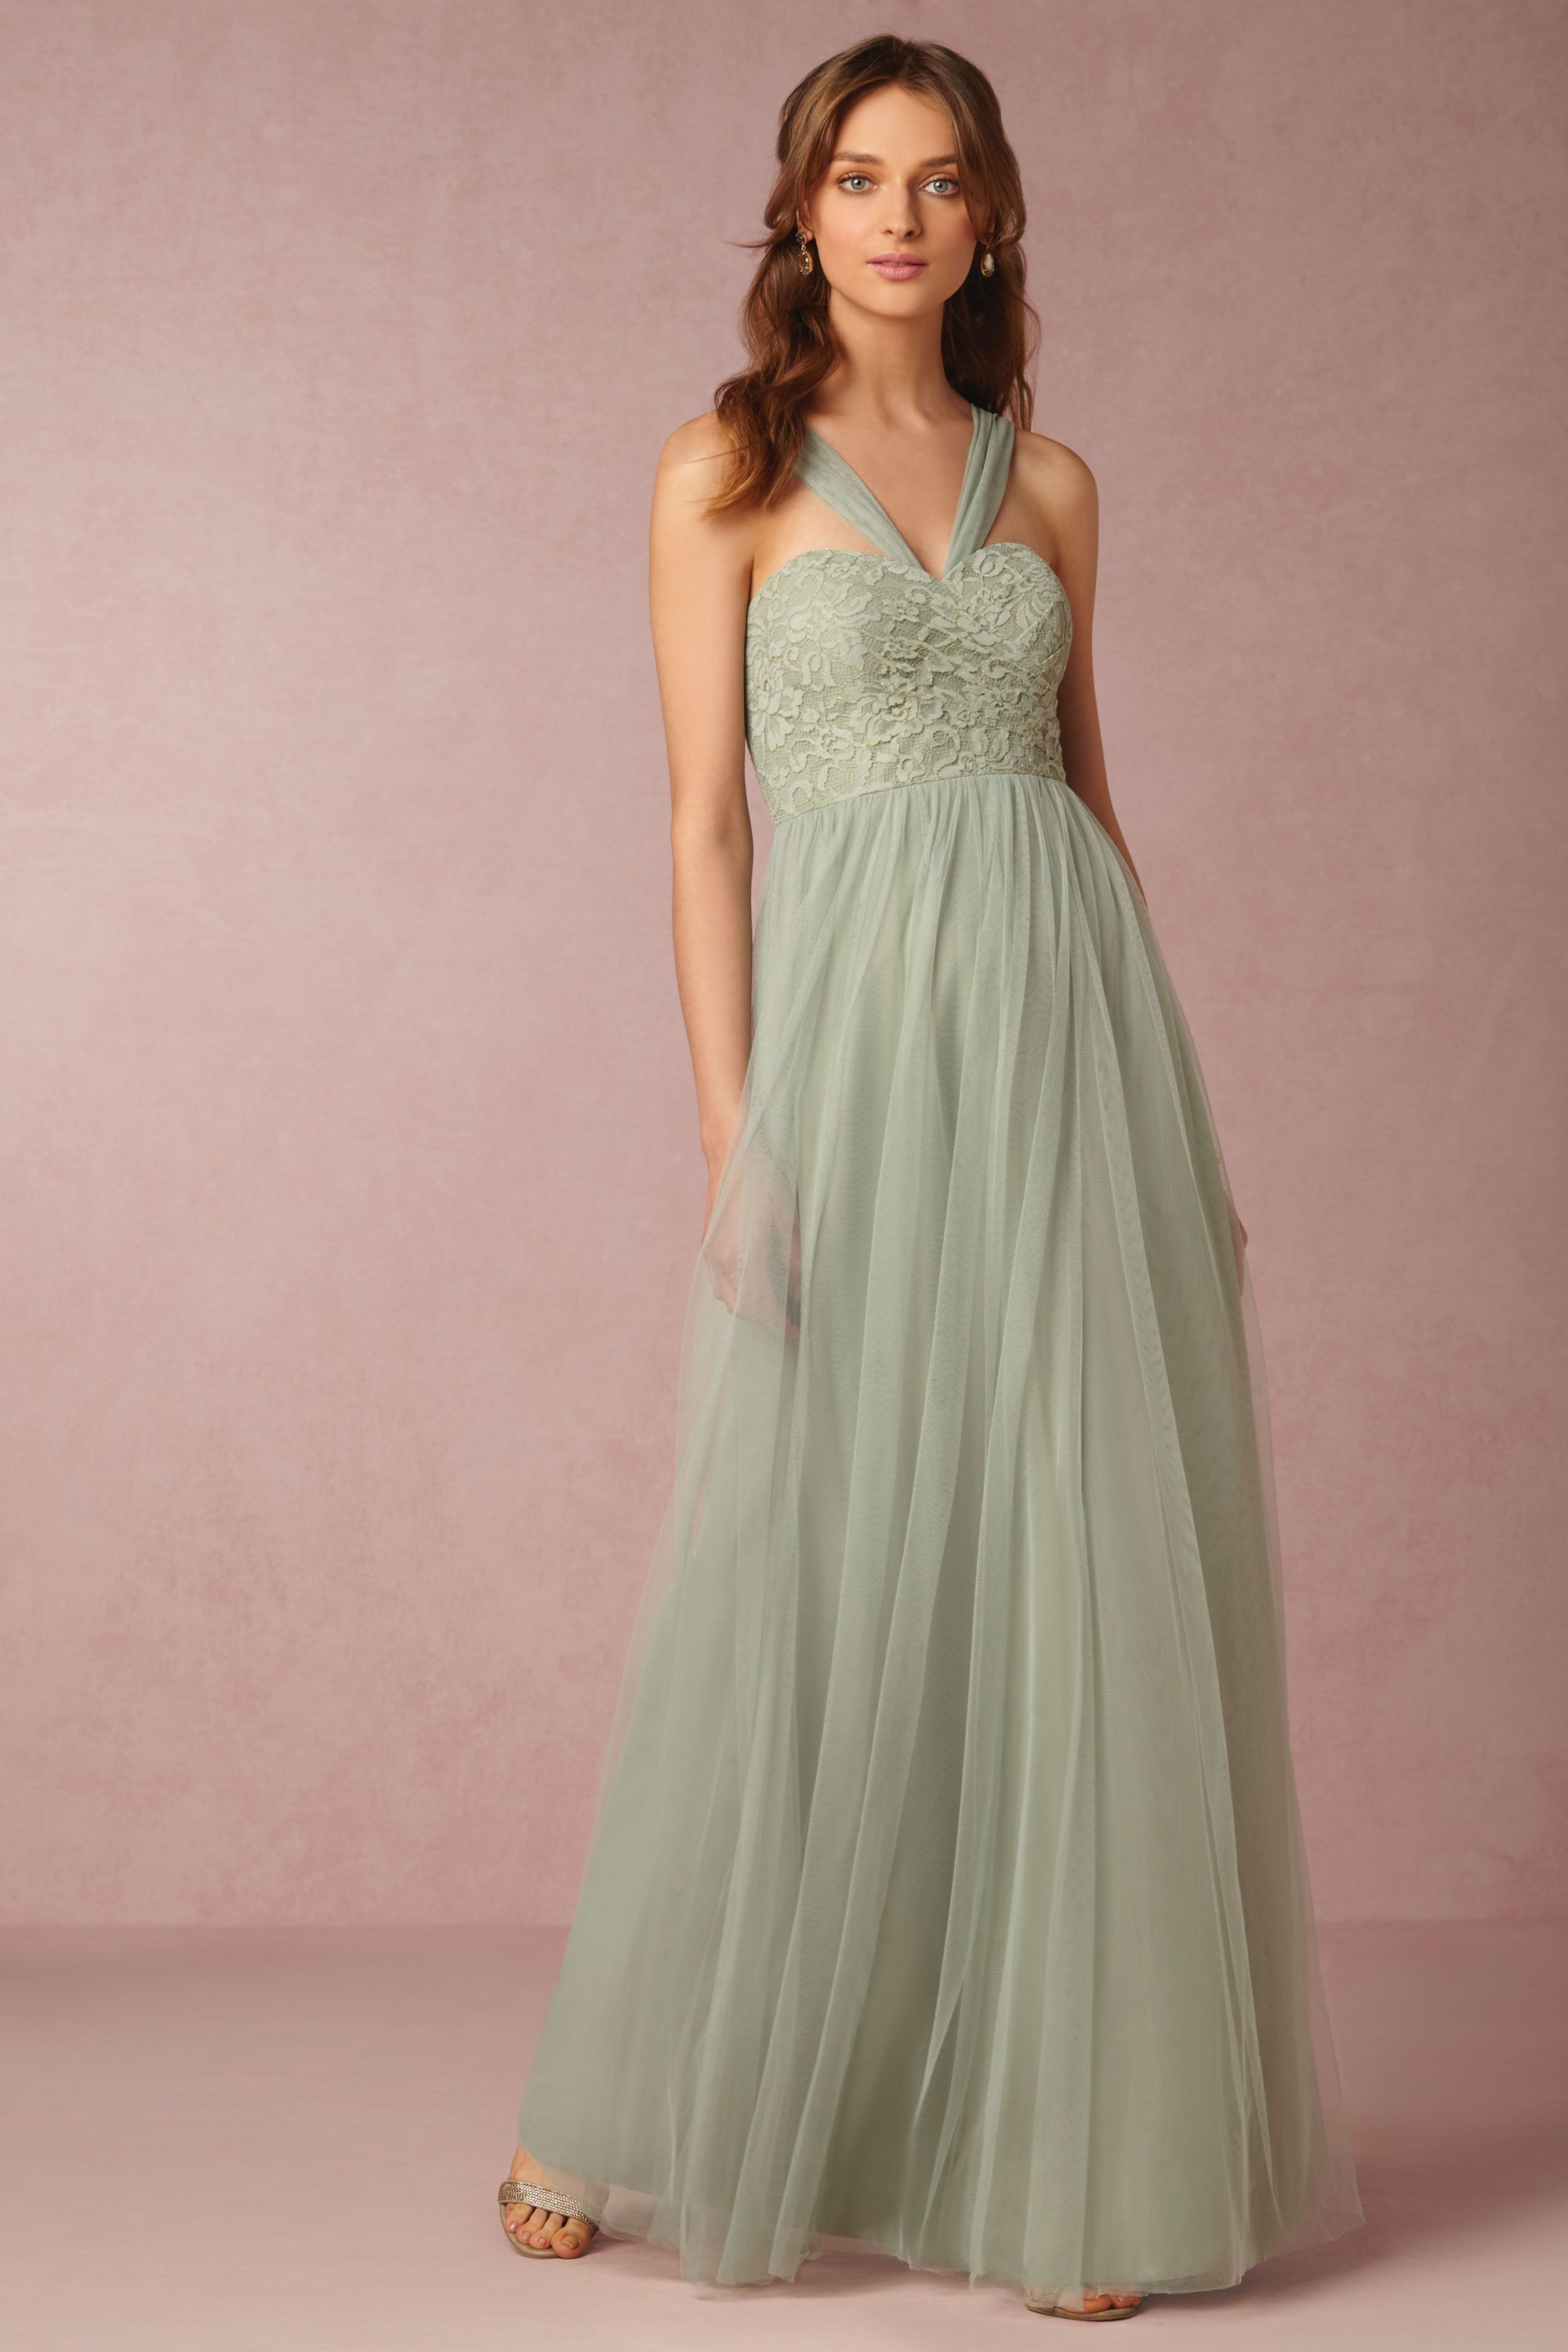 Bhldn juliette dress in bridesmaids bridesmaid dresses at bhldn bhldn juliette dress in bridesmaids bridesmaid dresses at bhldn ombrellifo Gallery